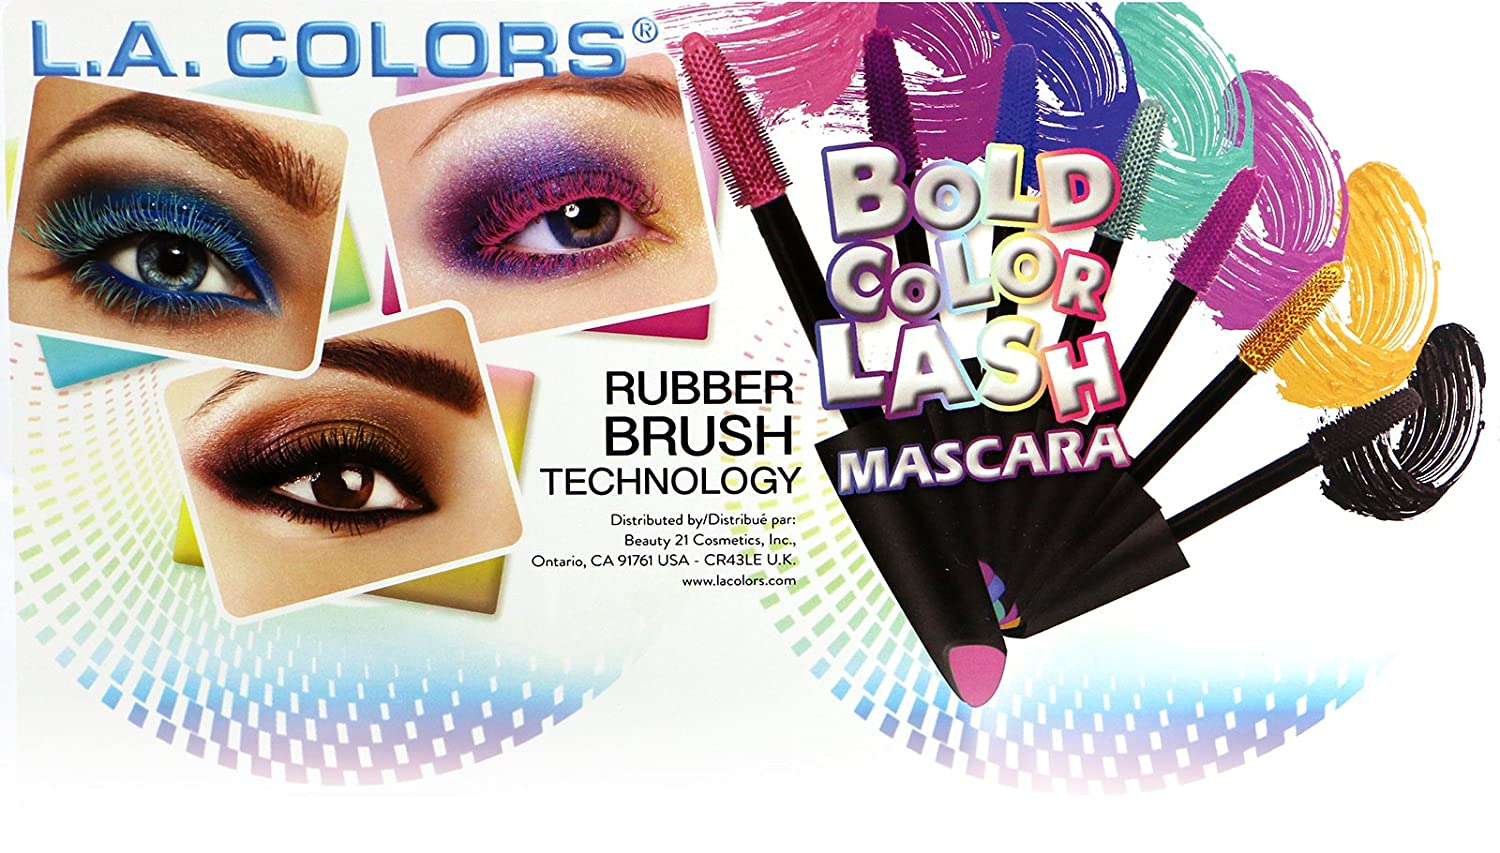 Amazon.com : L.A. COLORS Premium 12 Bold Color Lash Mascara Set of 12 Shades : Beauty